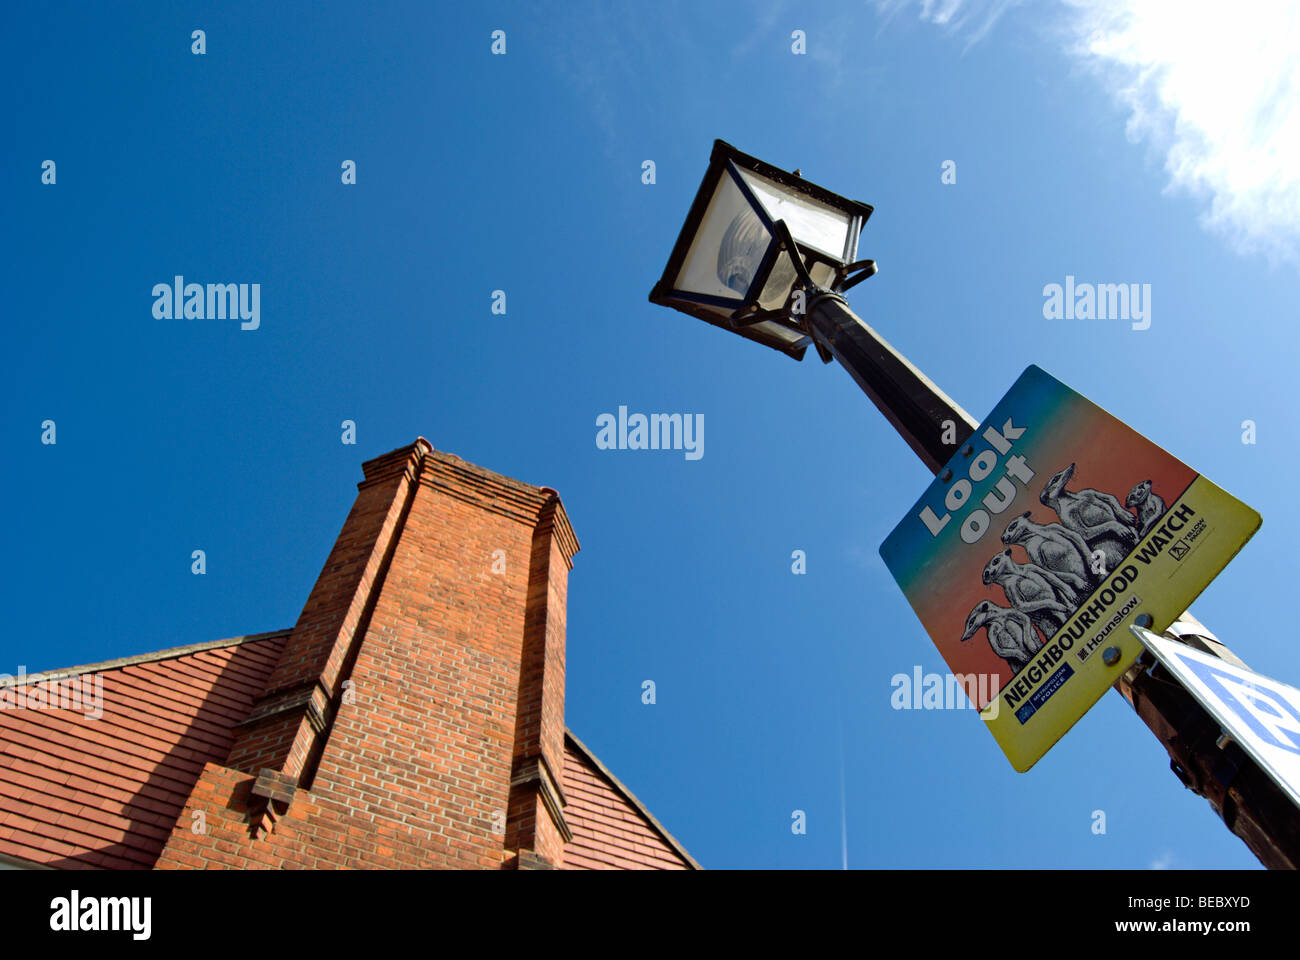 victorian style street lamp with neighbourhood watch sign and tall brick chimney, in bedford park, chiswick, england - Stock Image